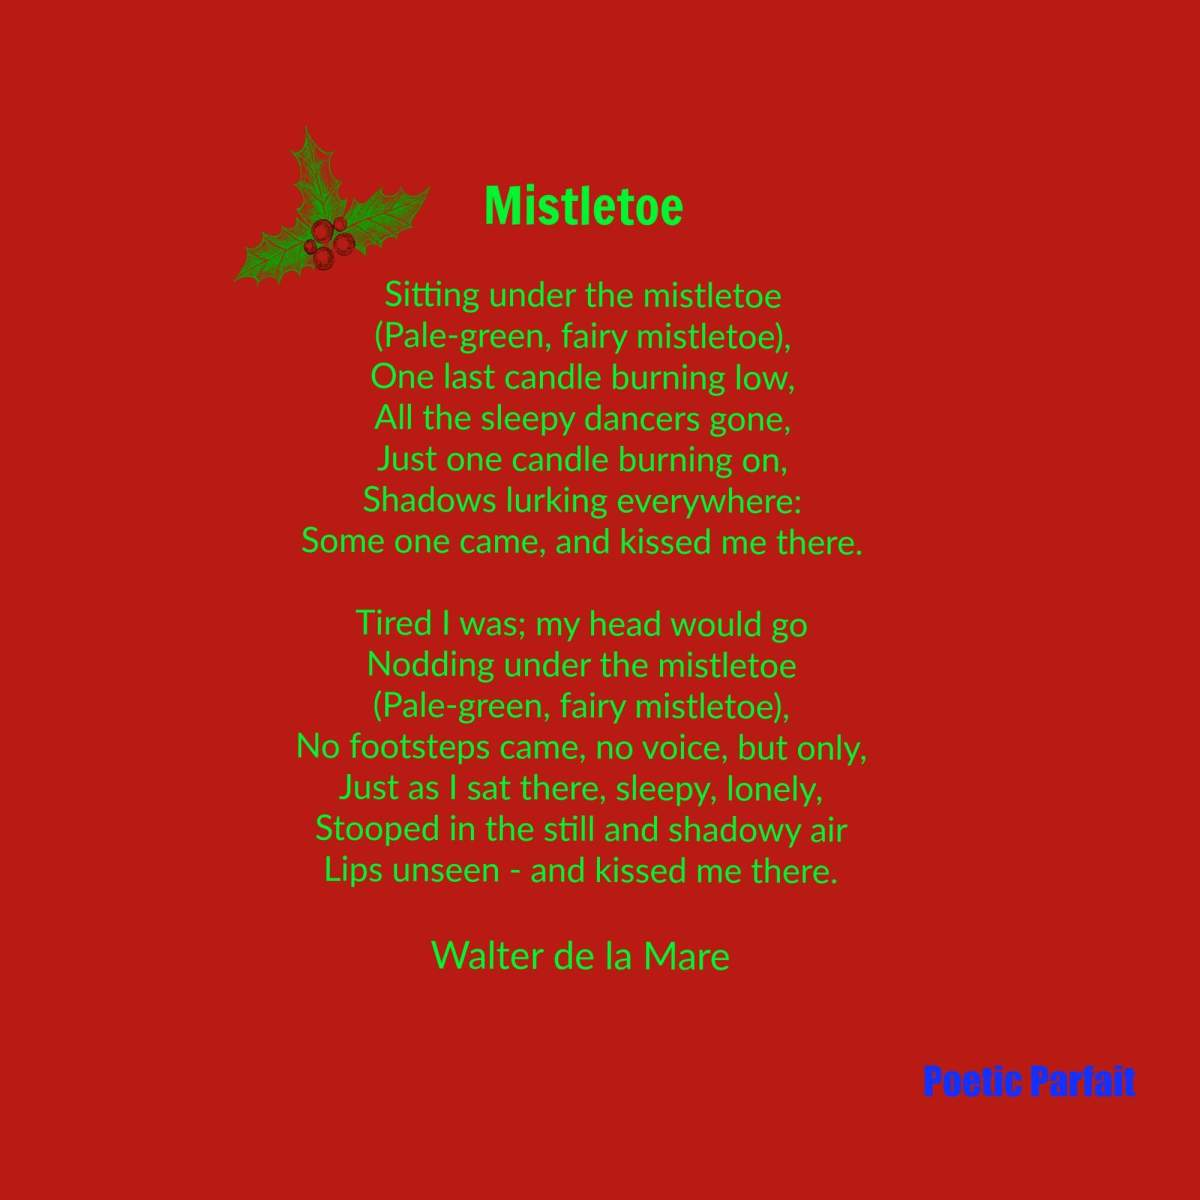 Poetry Analysis Of Misletoe By Walter De La Mare Poetic Parfait